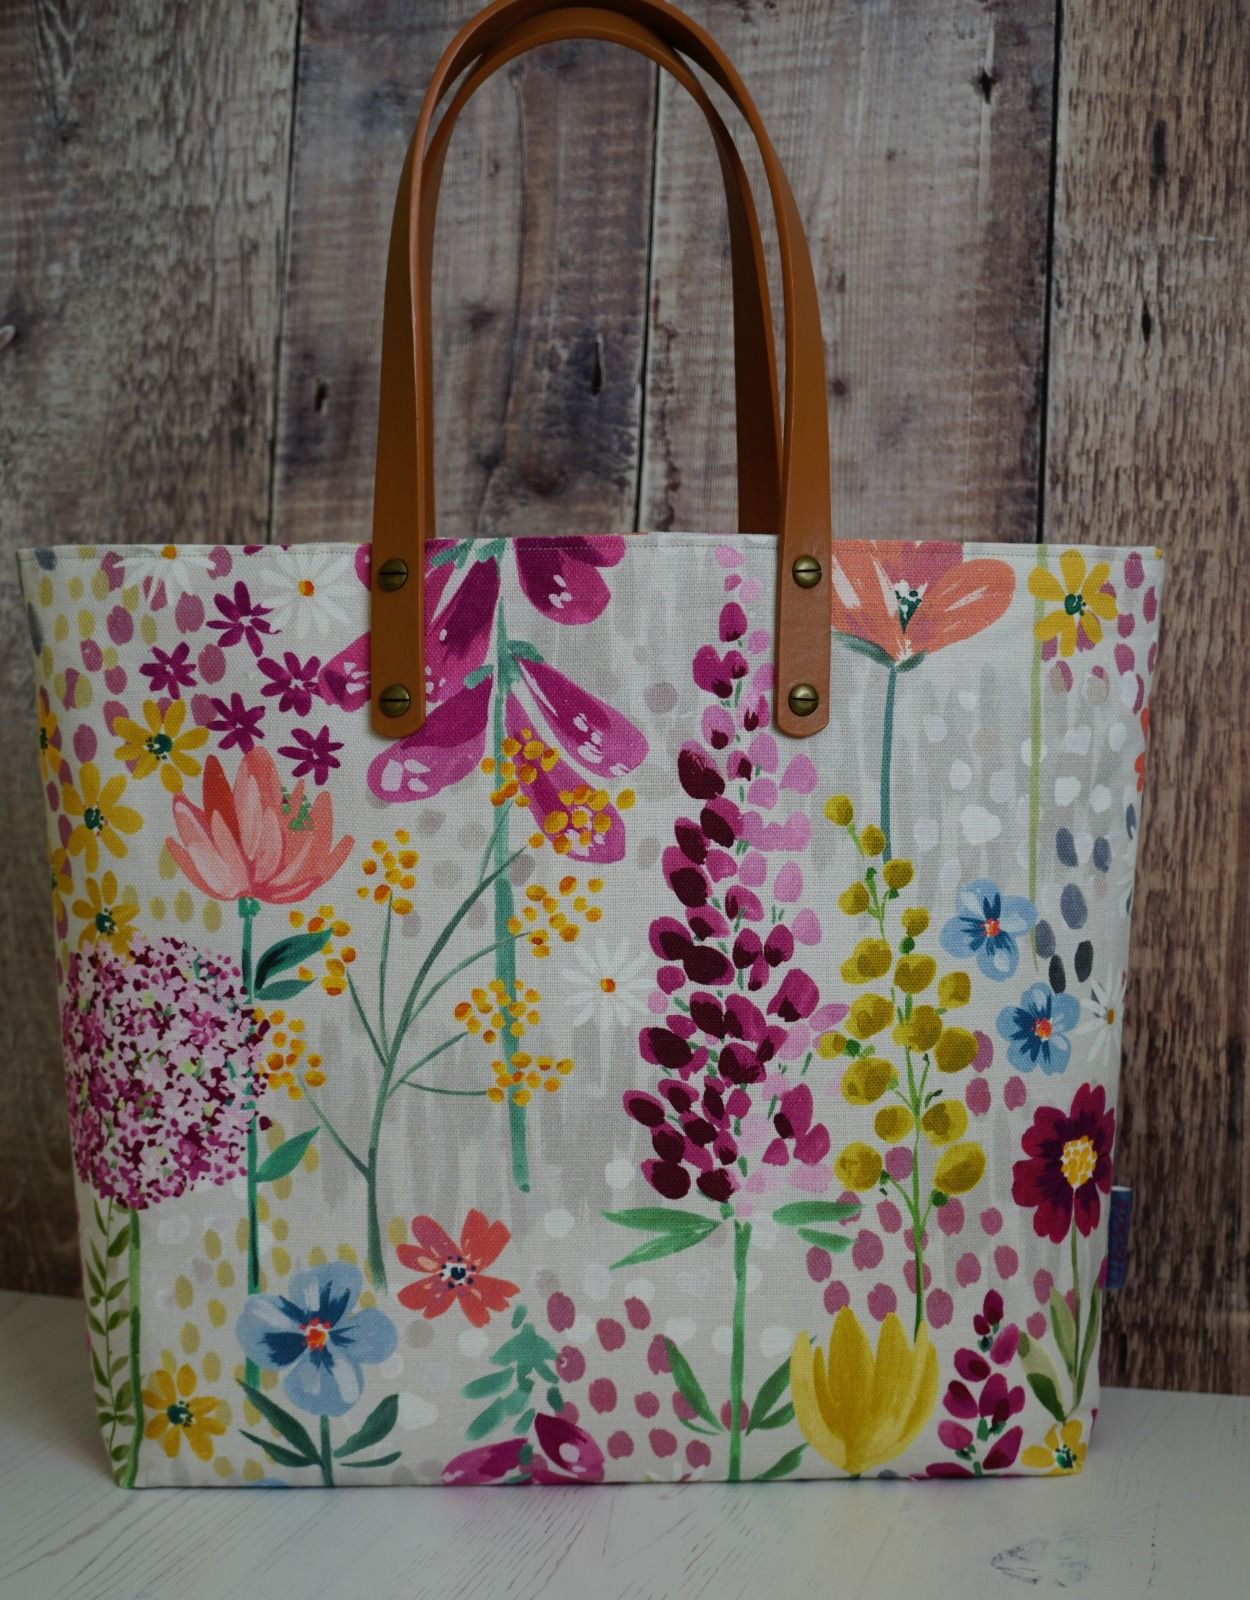 Tote Bag - Floral Multi with Brown Faux Leather Handles